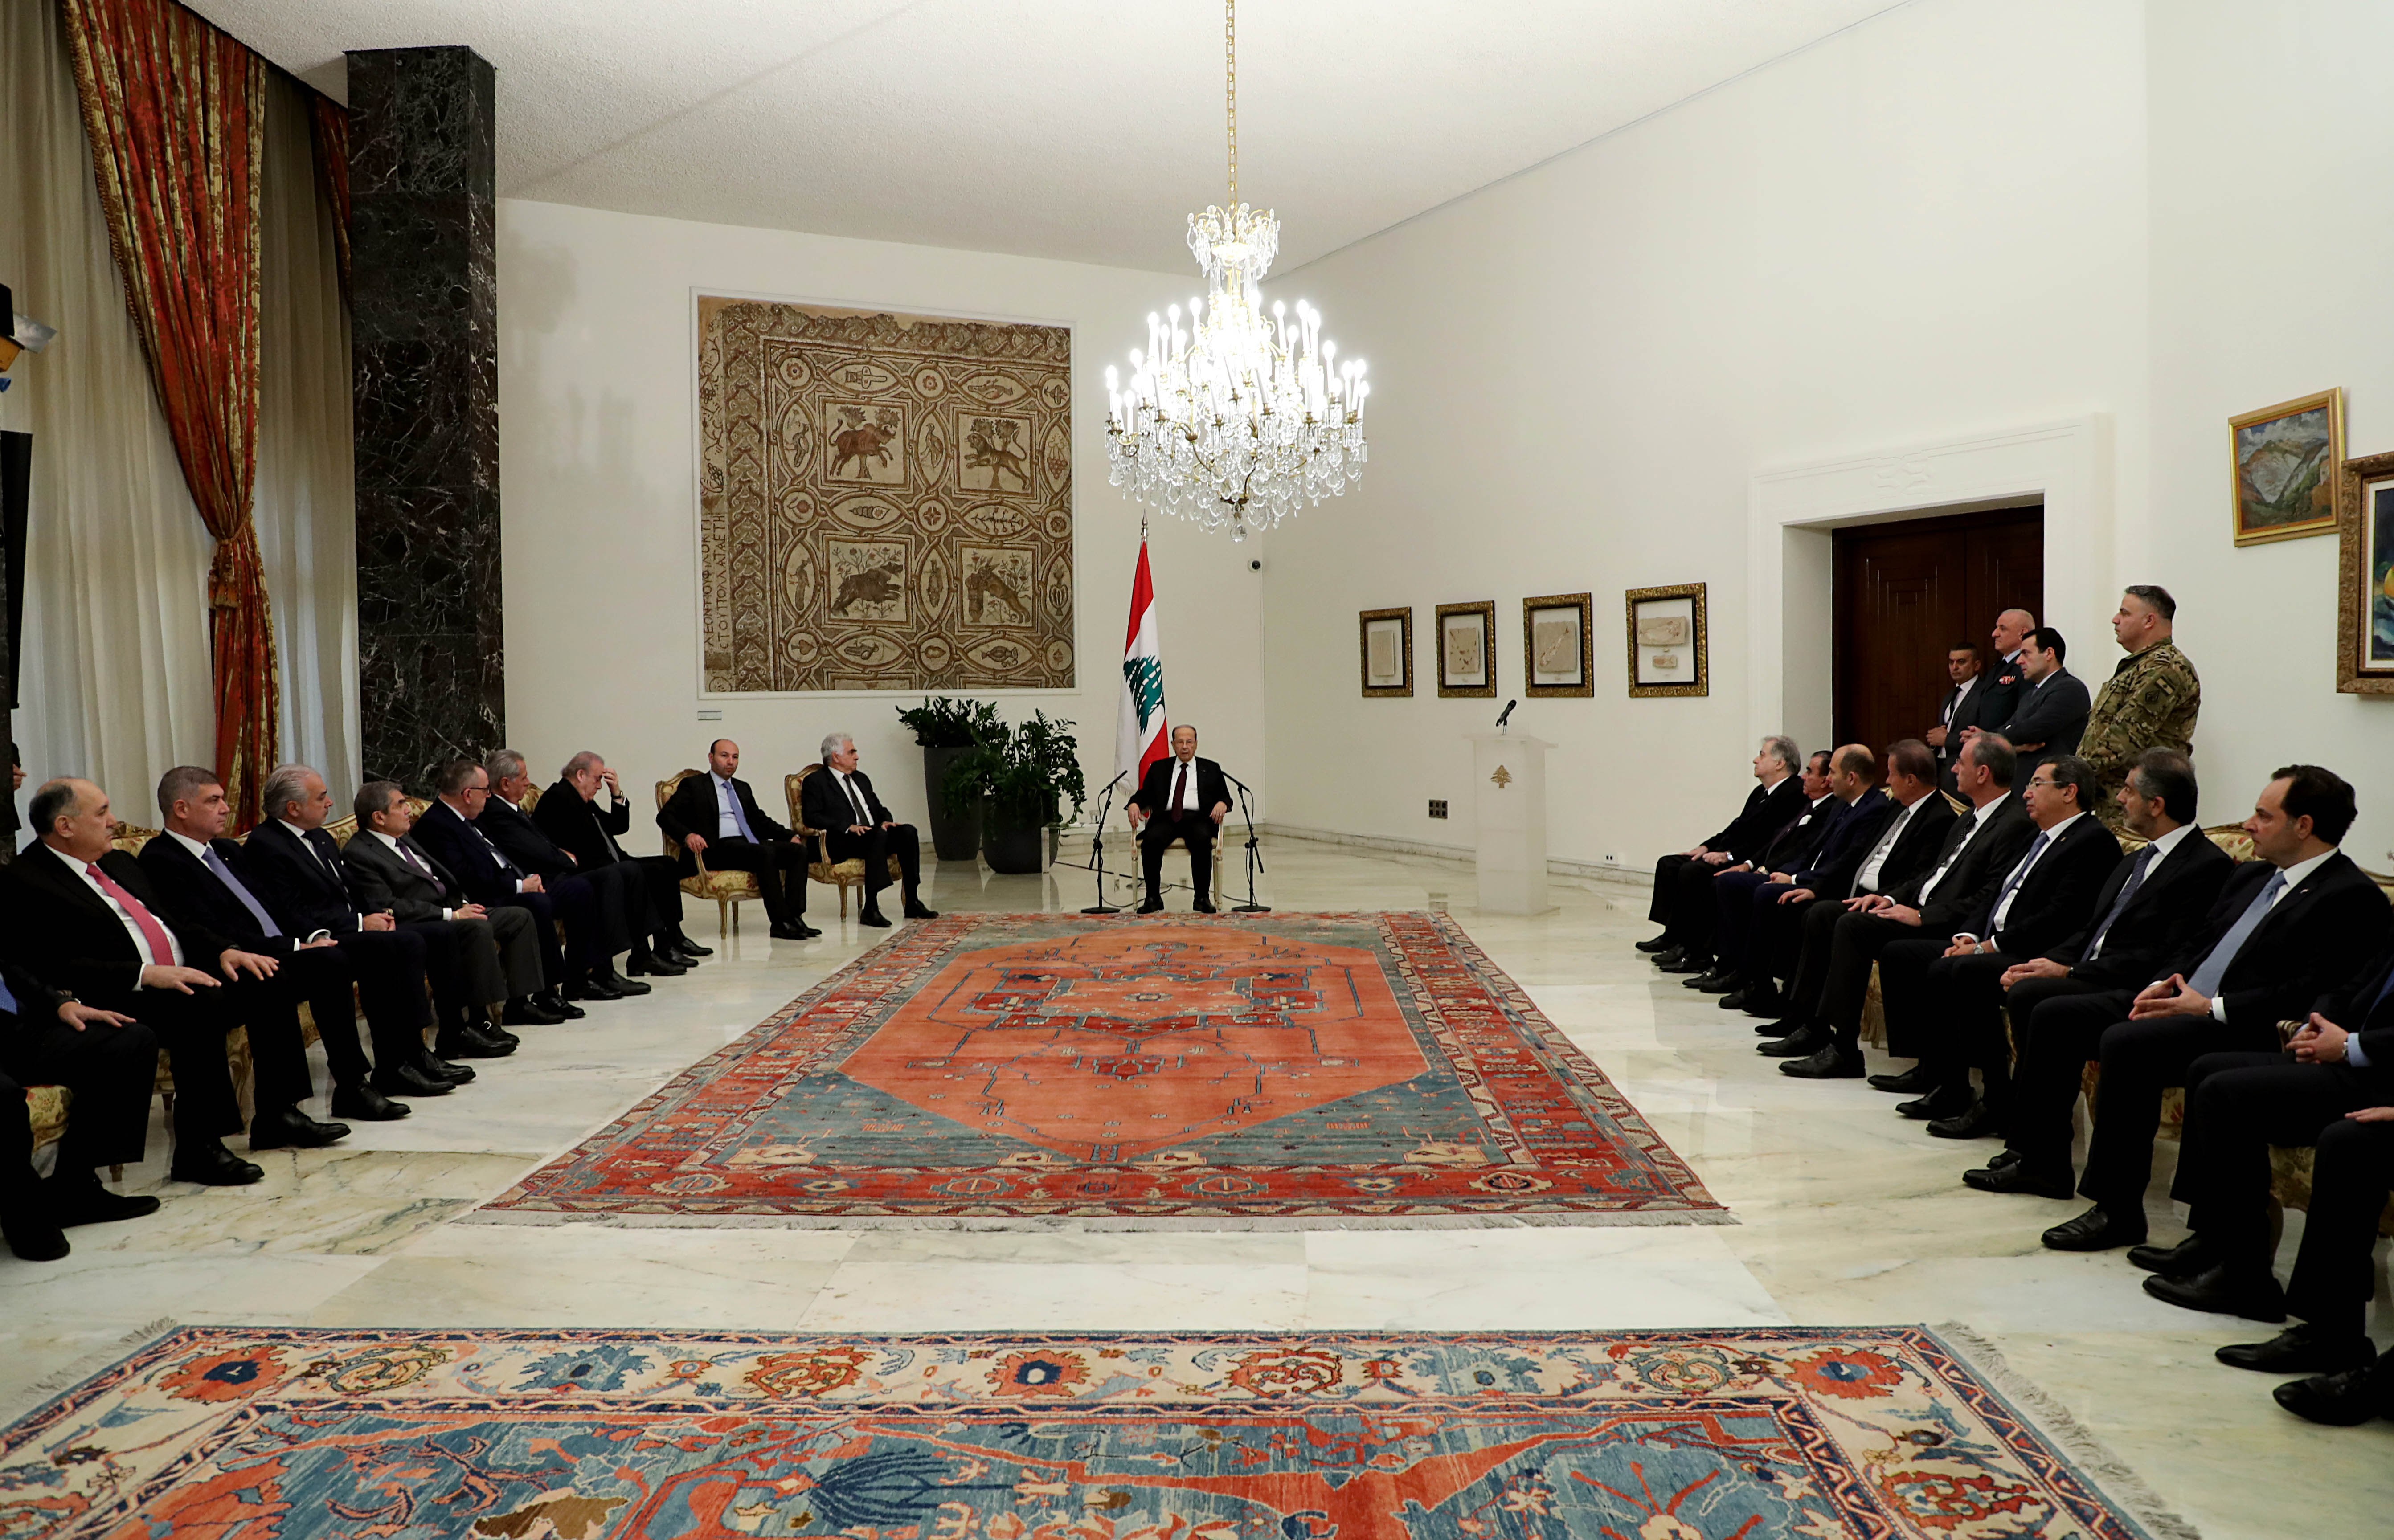 2 - members of the diplomatic corps accredited in Lebanon (3)